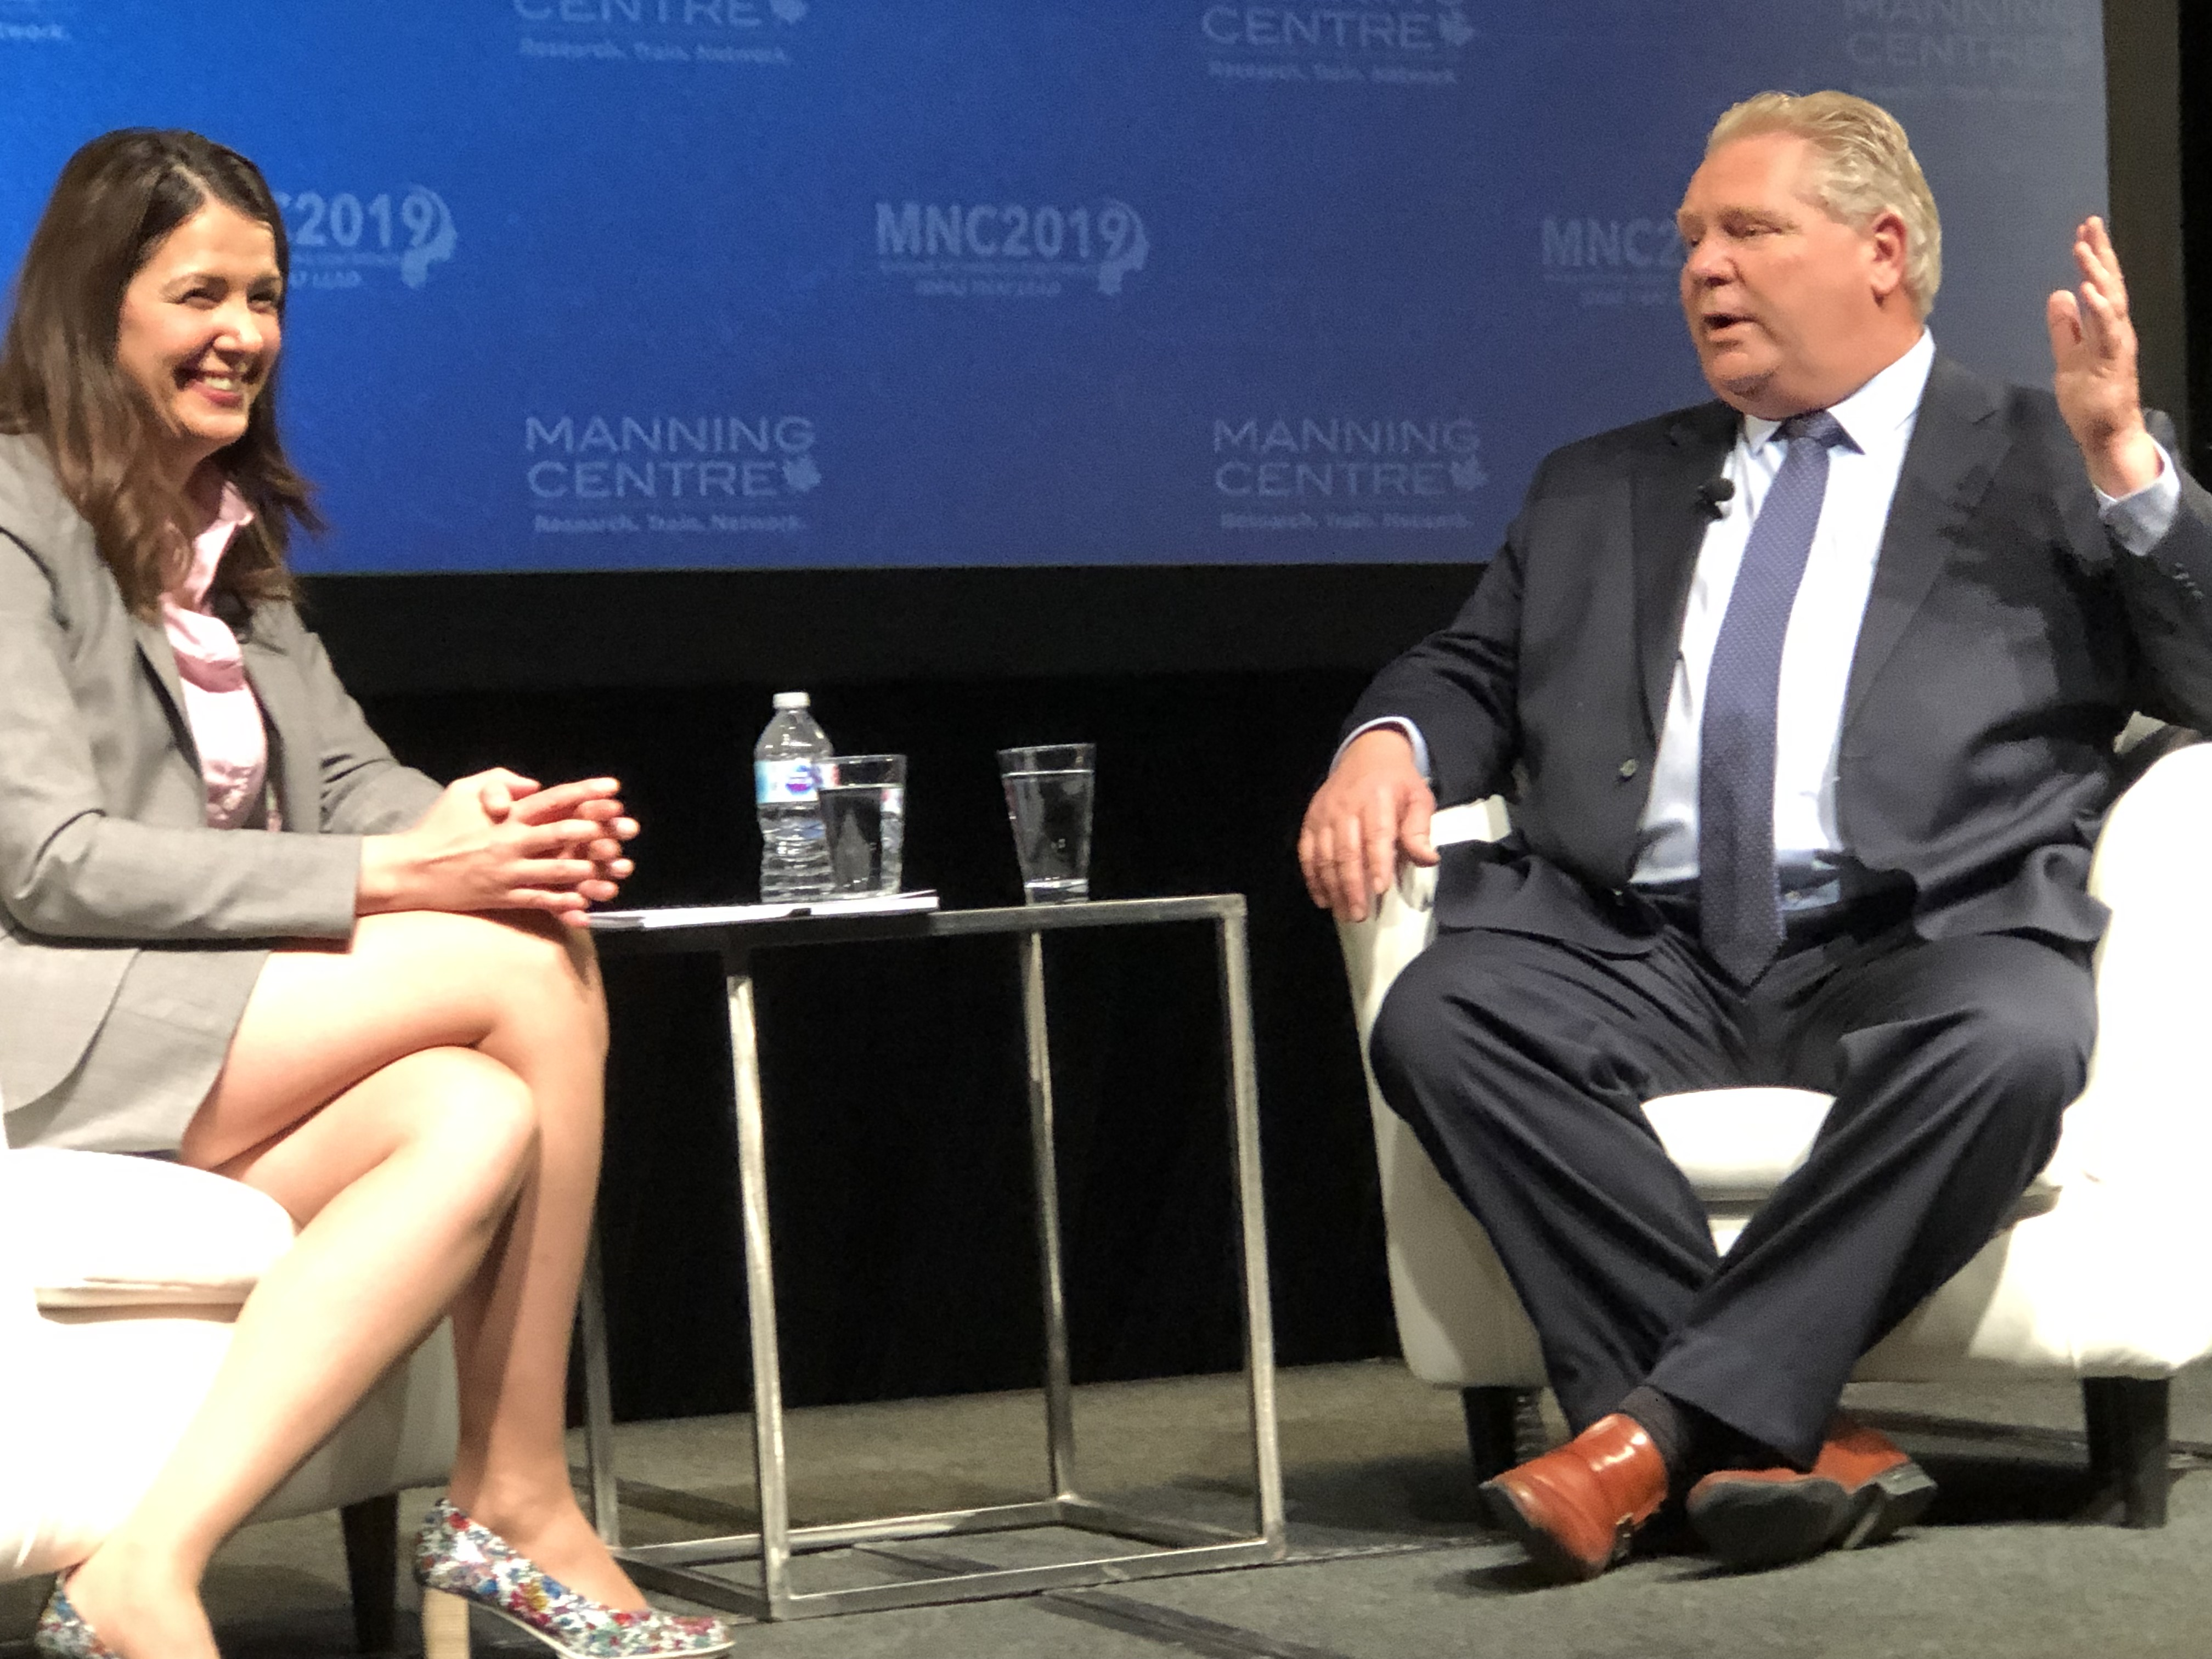 Ontario Premier Doug Ford is interviewed by Calgary broadcaster Danielle Smith at the 2019 Manning Networking Conference, held in Ottawa, Canada, March 23, 2019. Daily Caller photo by Janet Krayden